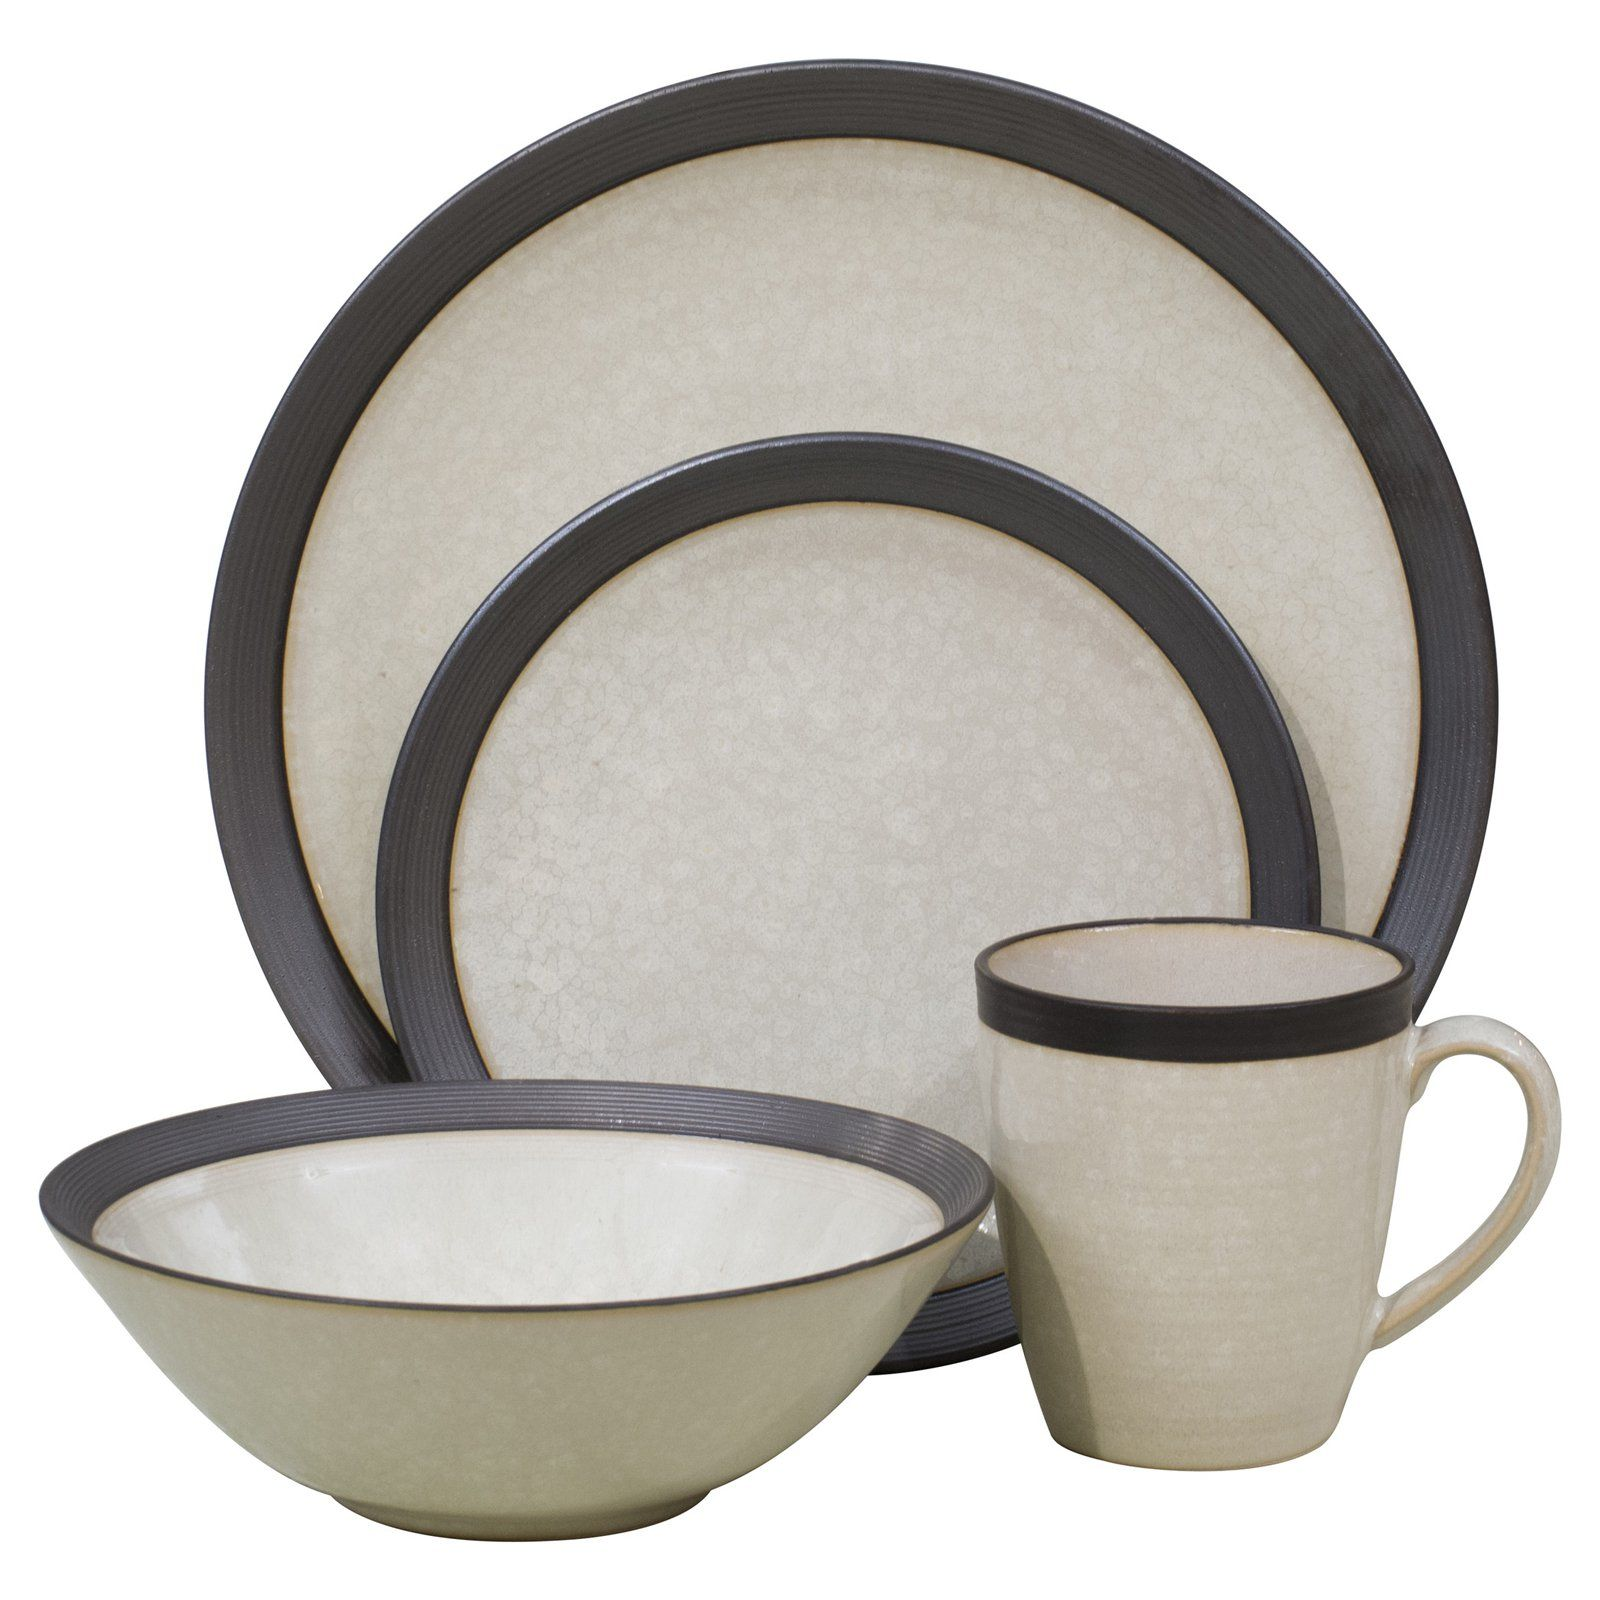 Sango Omega 16 Piece Dinnerware Set - Pearl - Gracefully organic and contemporary the stoneware  sc 1 st  Pinterest & Sango Omega 16 Piece Dinnerware Set - Pearl - Gracefully organic and ...